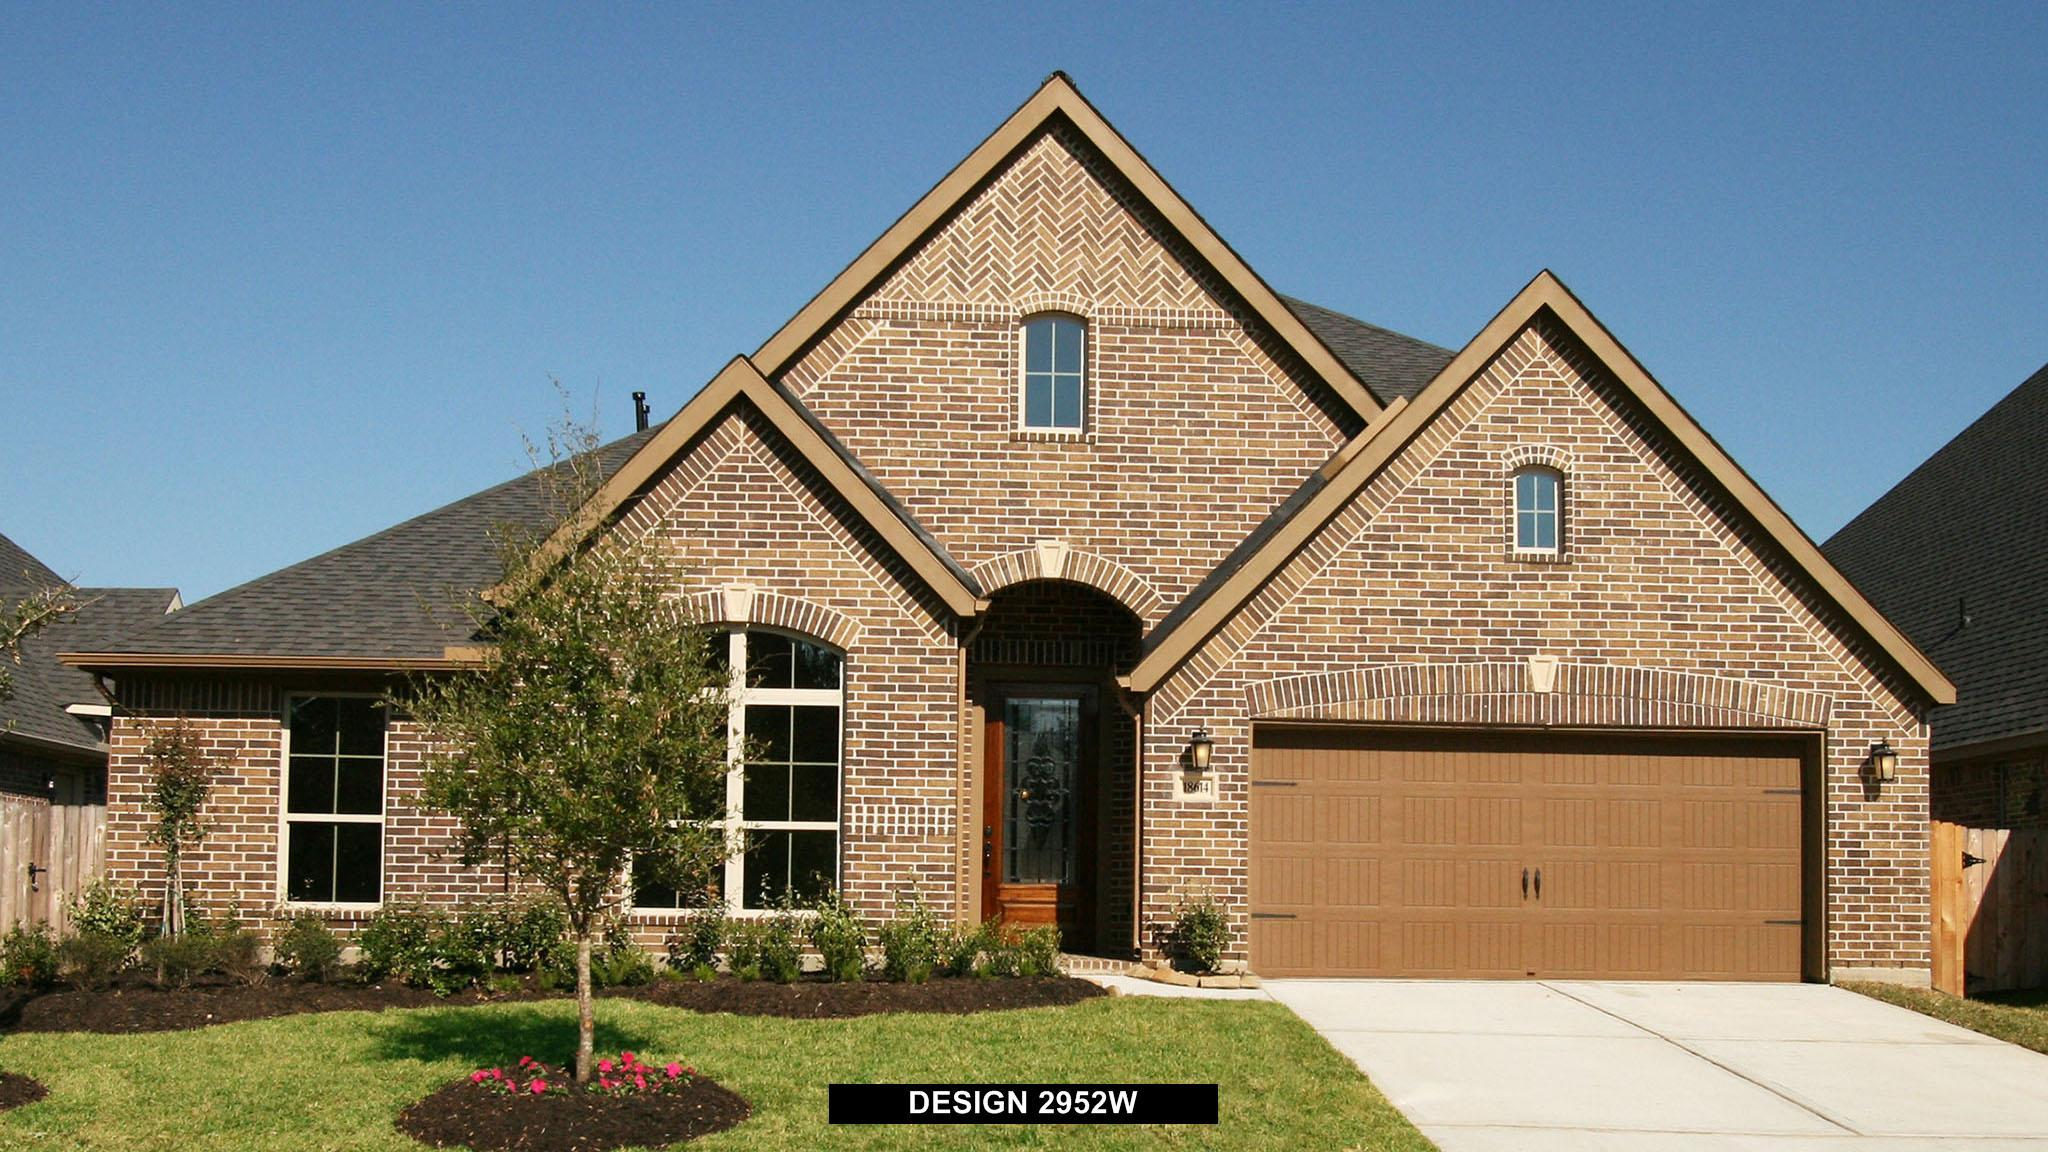 2952W - Firethorne: Firethorne 60': Katy, TX - Perry Homes